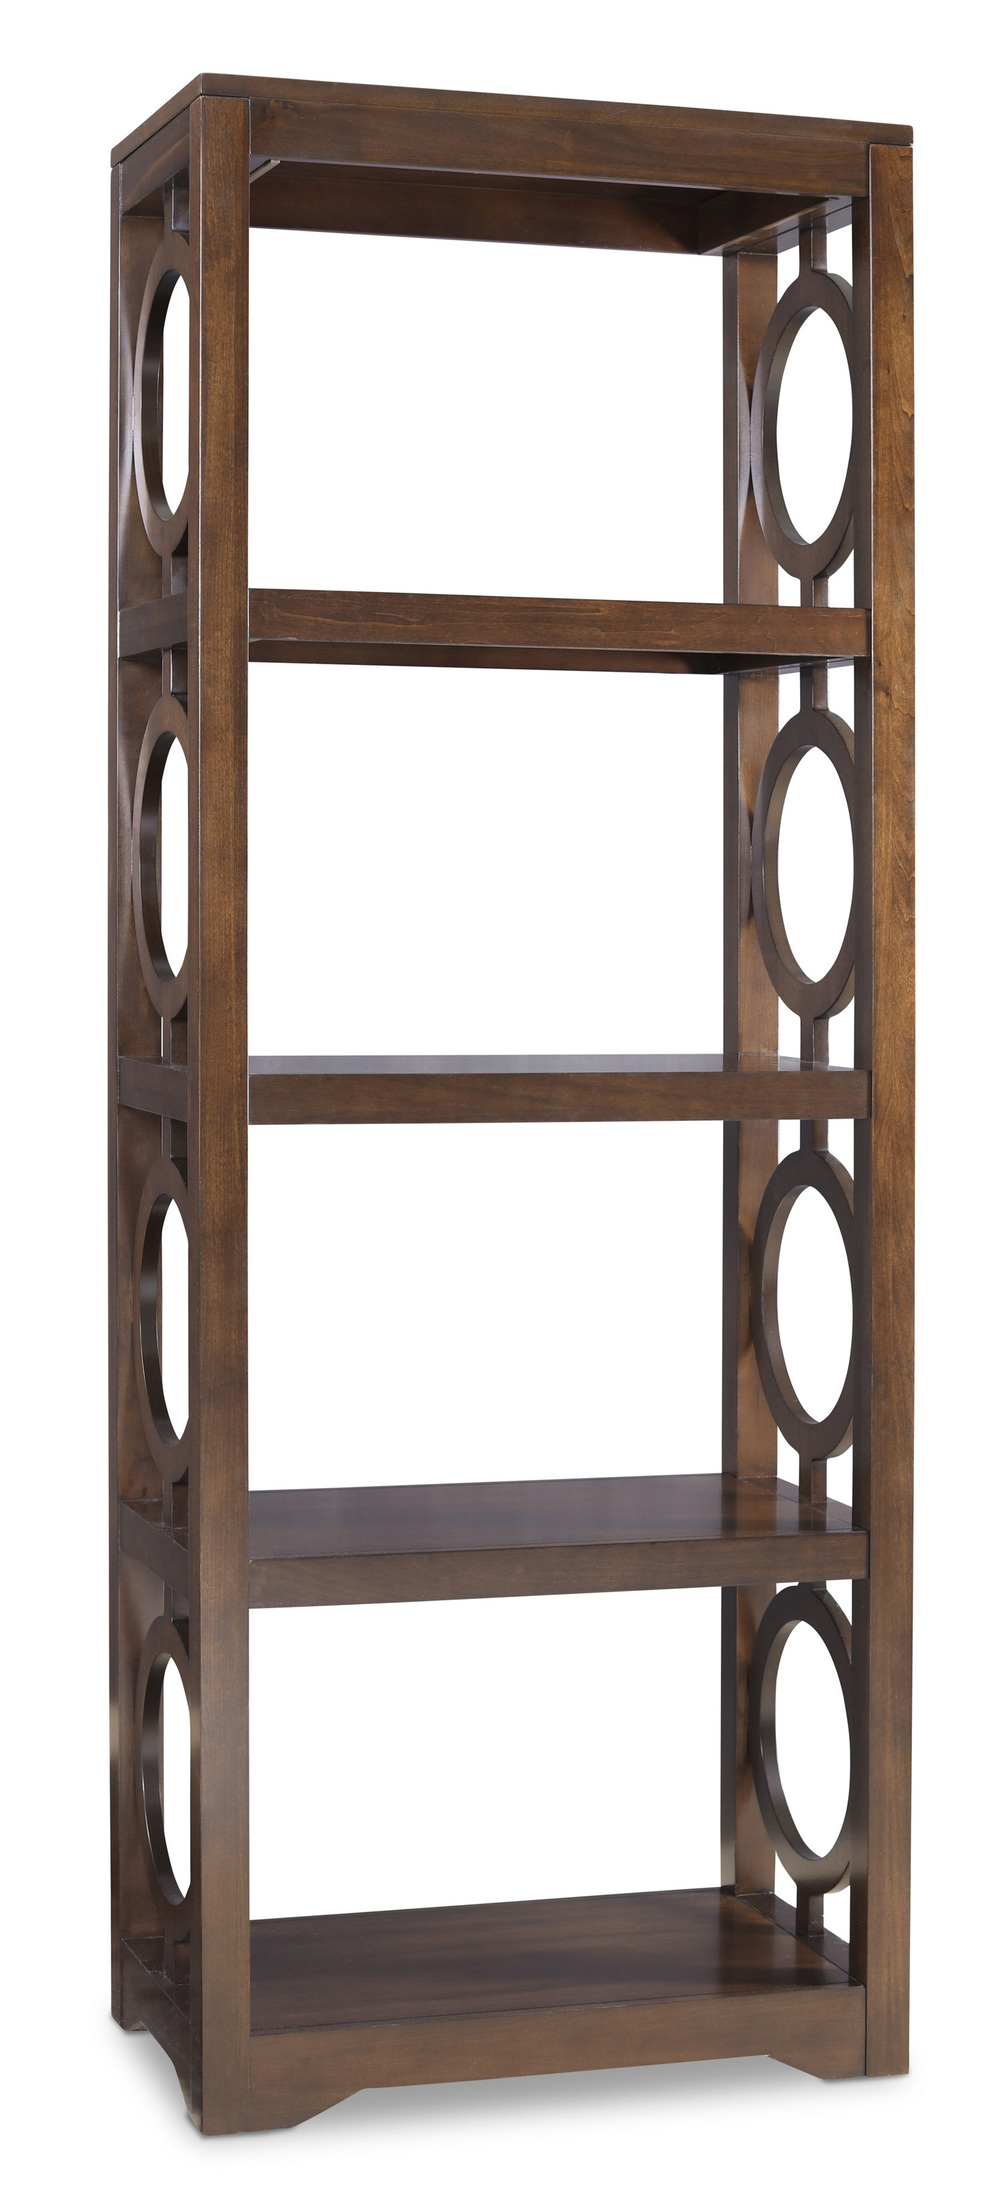 Hooker Furniture - Kinsey Etagere